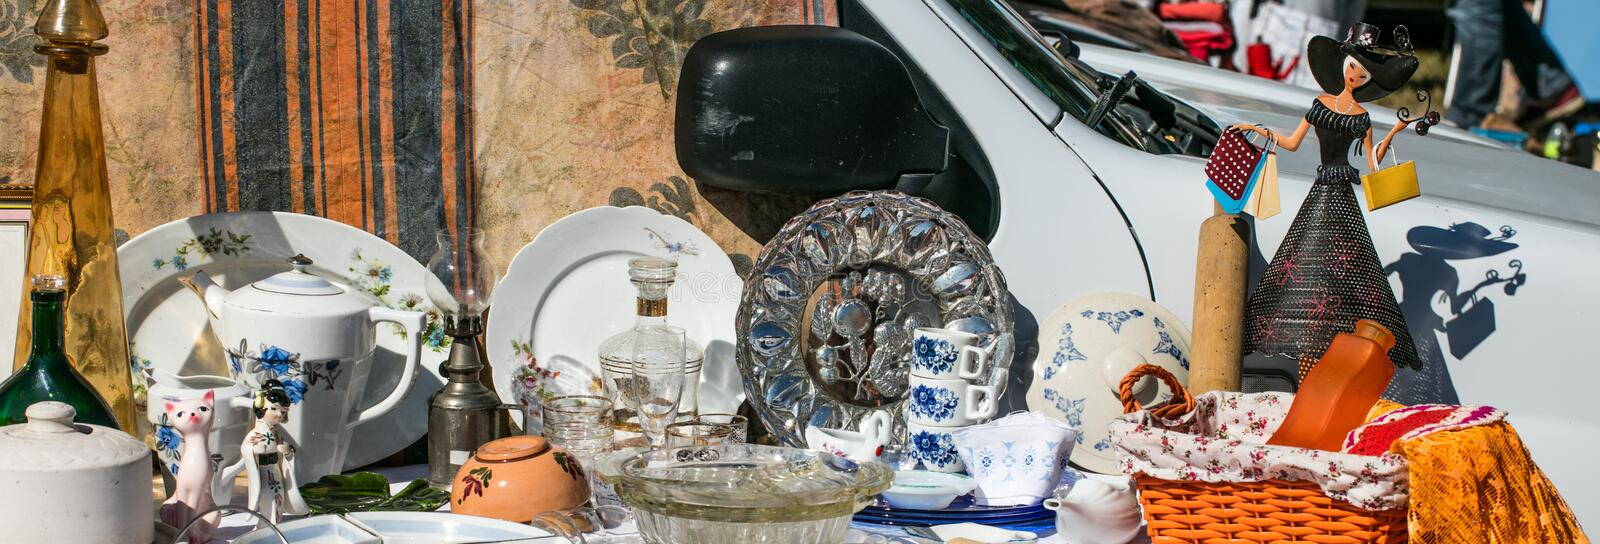 Decorative display of household objects and dishes at boot sale. Decorative display of household things, various objects and dishes at boot sale for second hand stock image